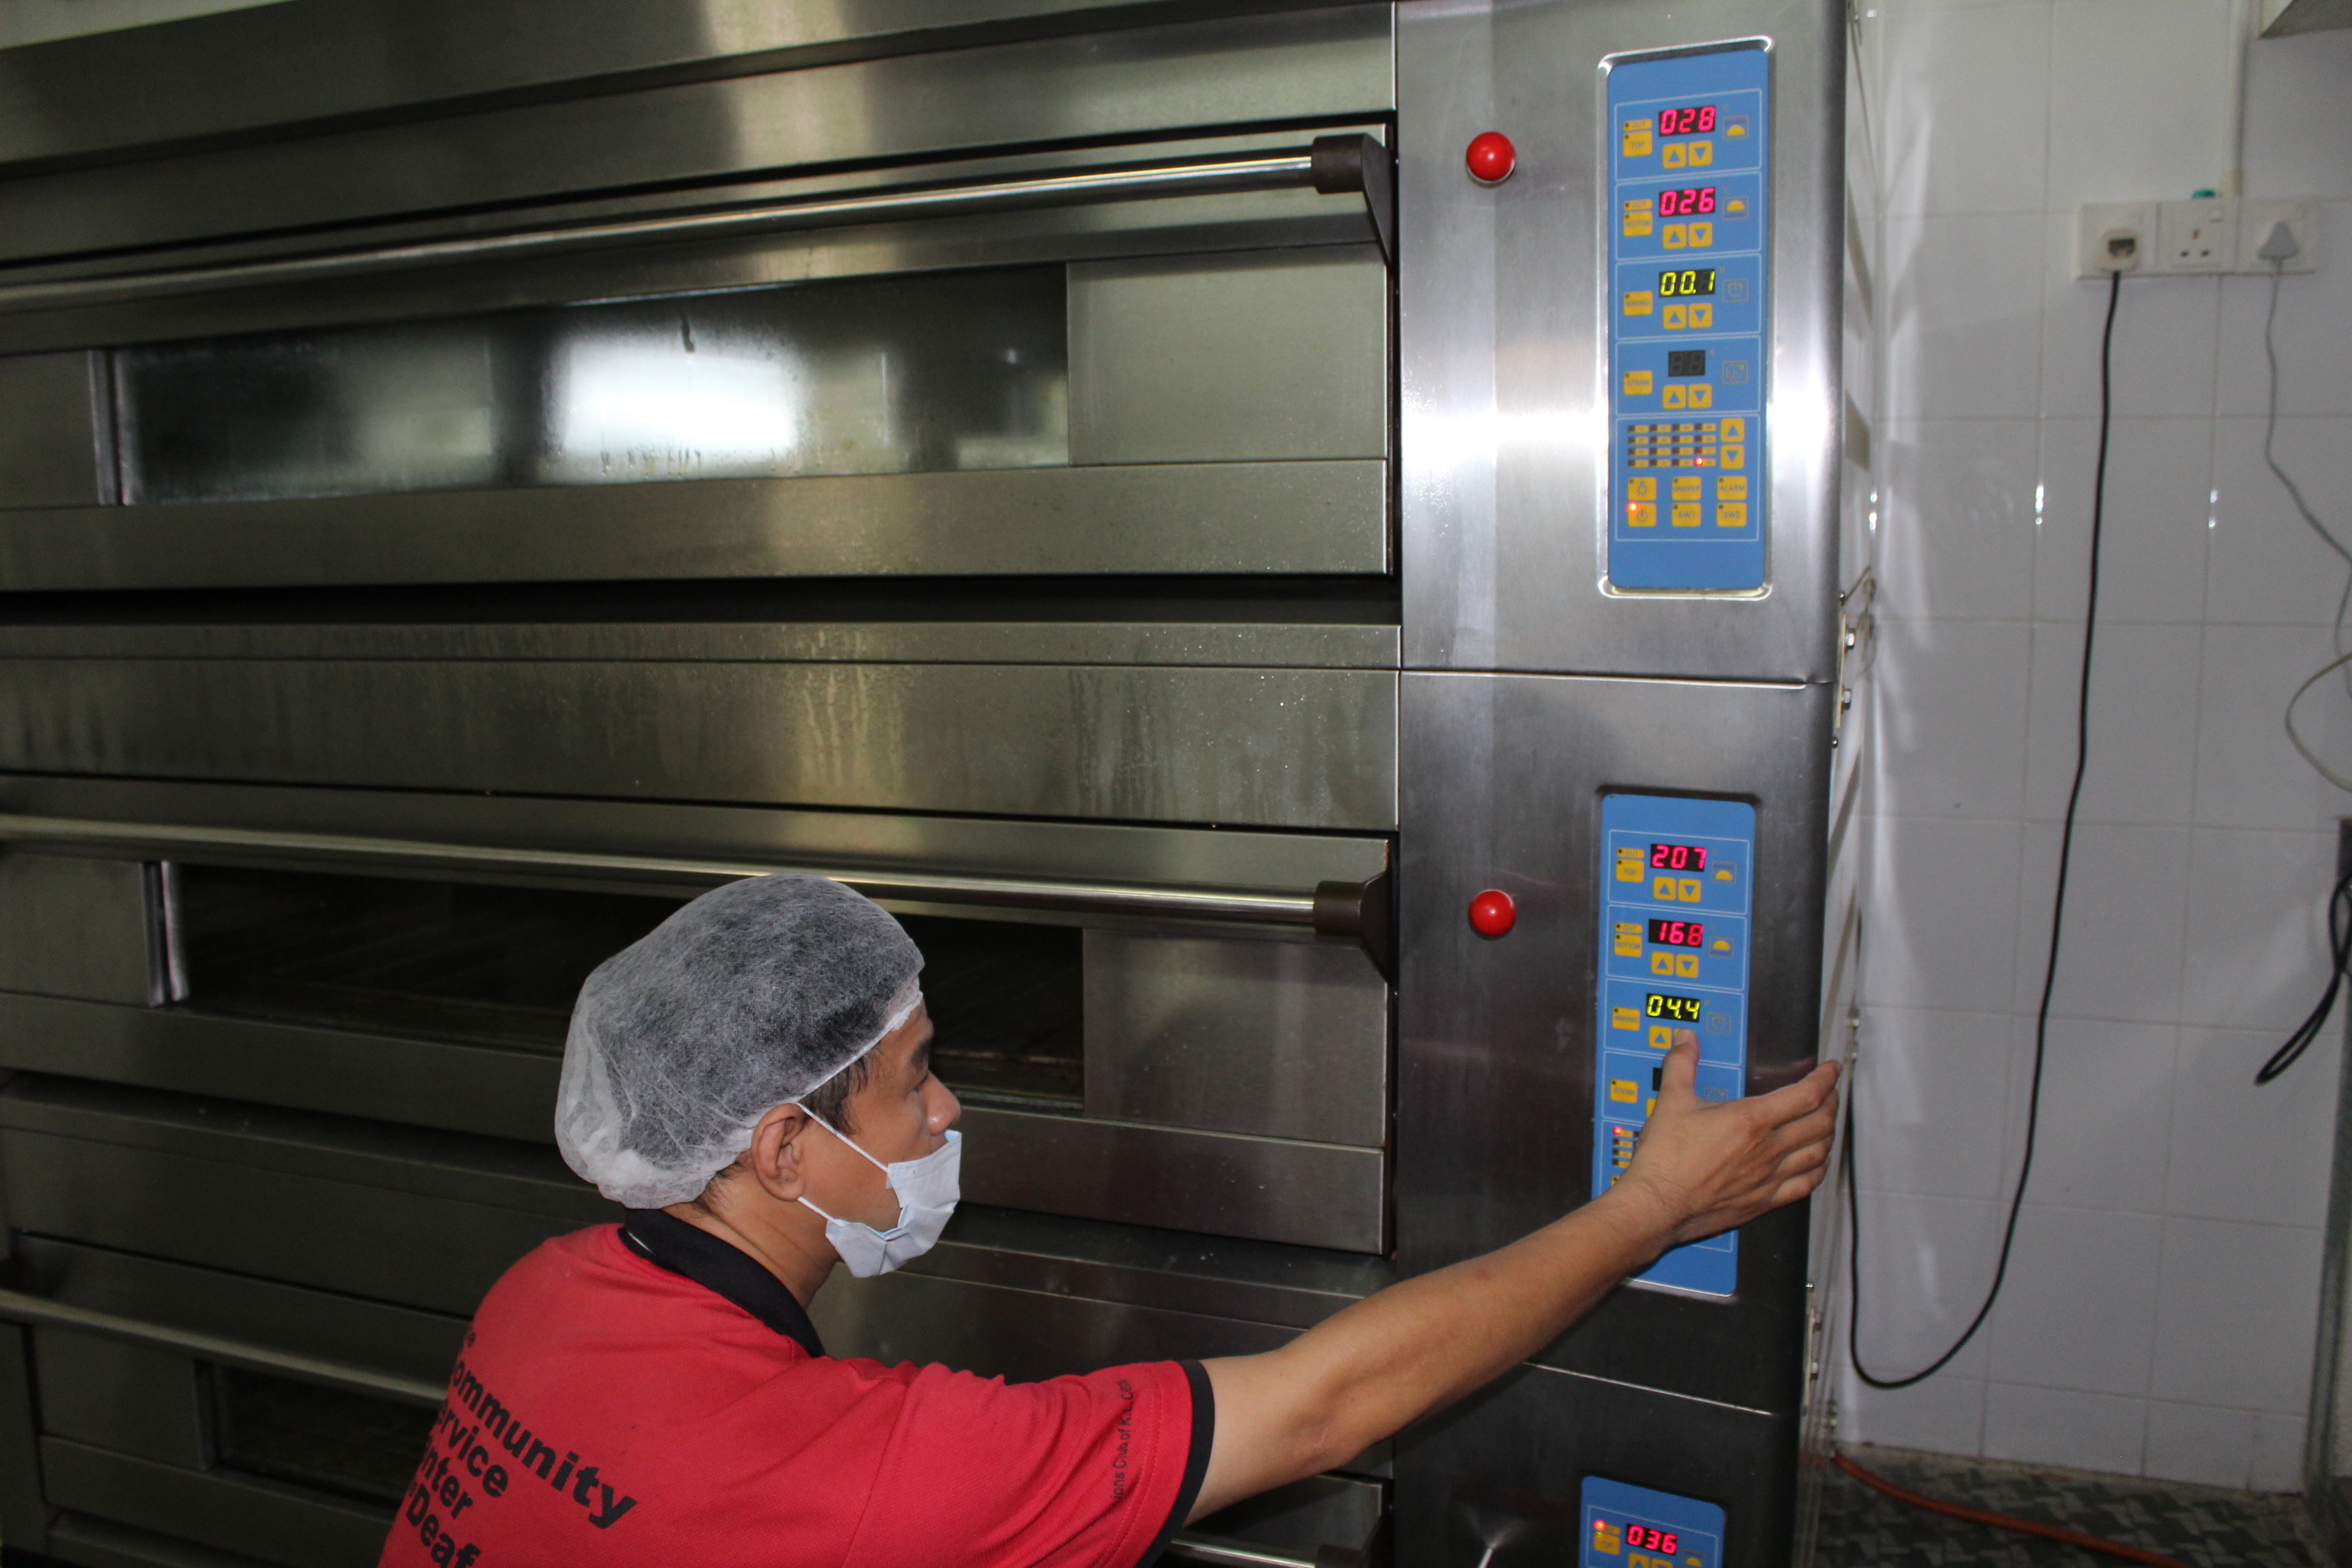 Head chef Khew Yun Loi demonstrates how the three-tier oven works.